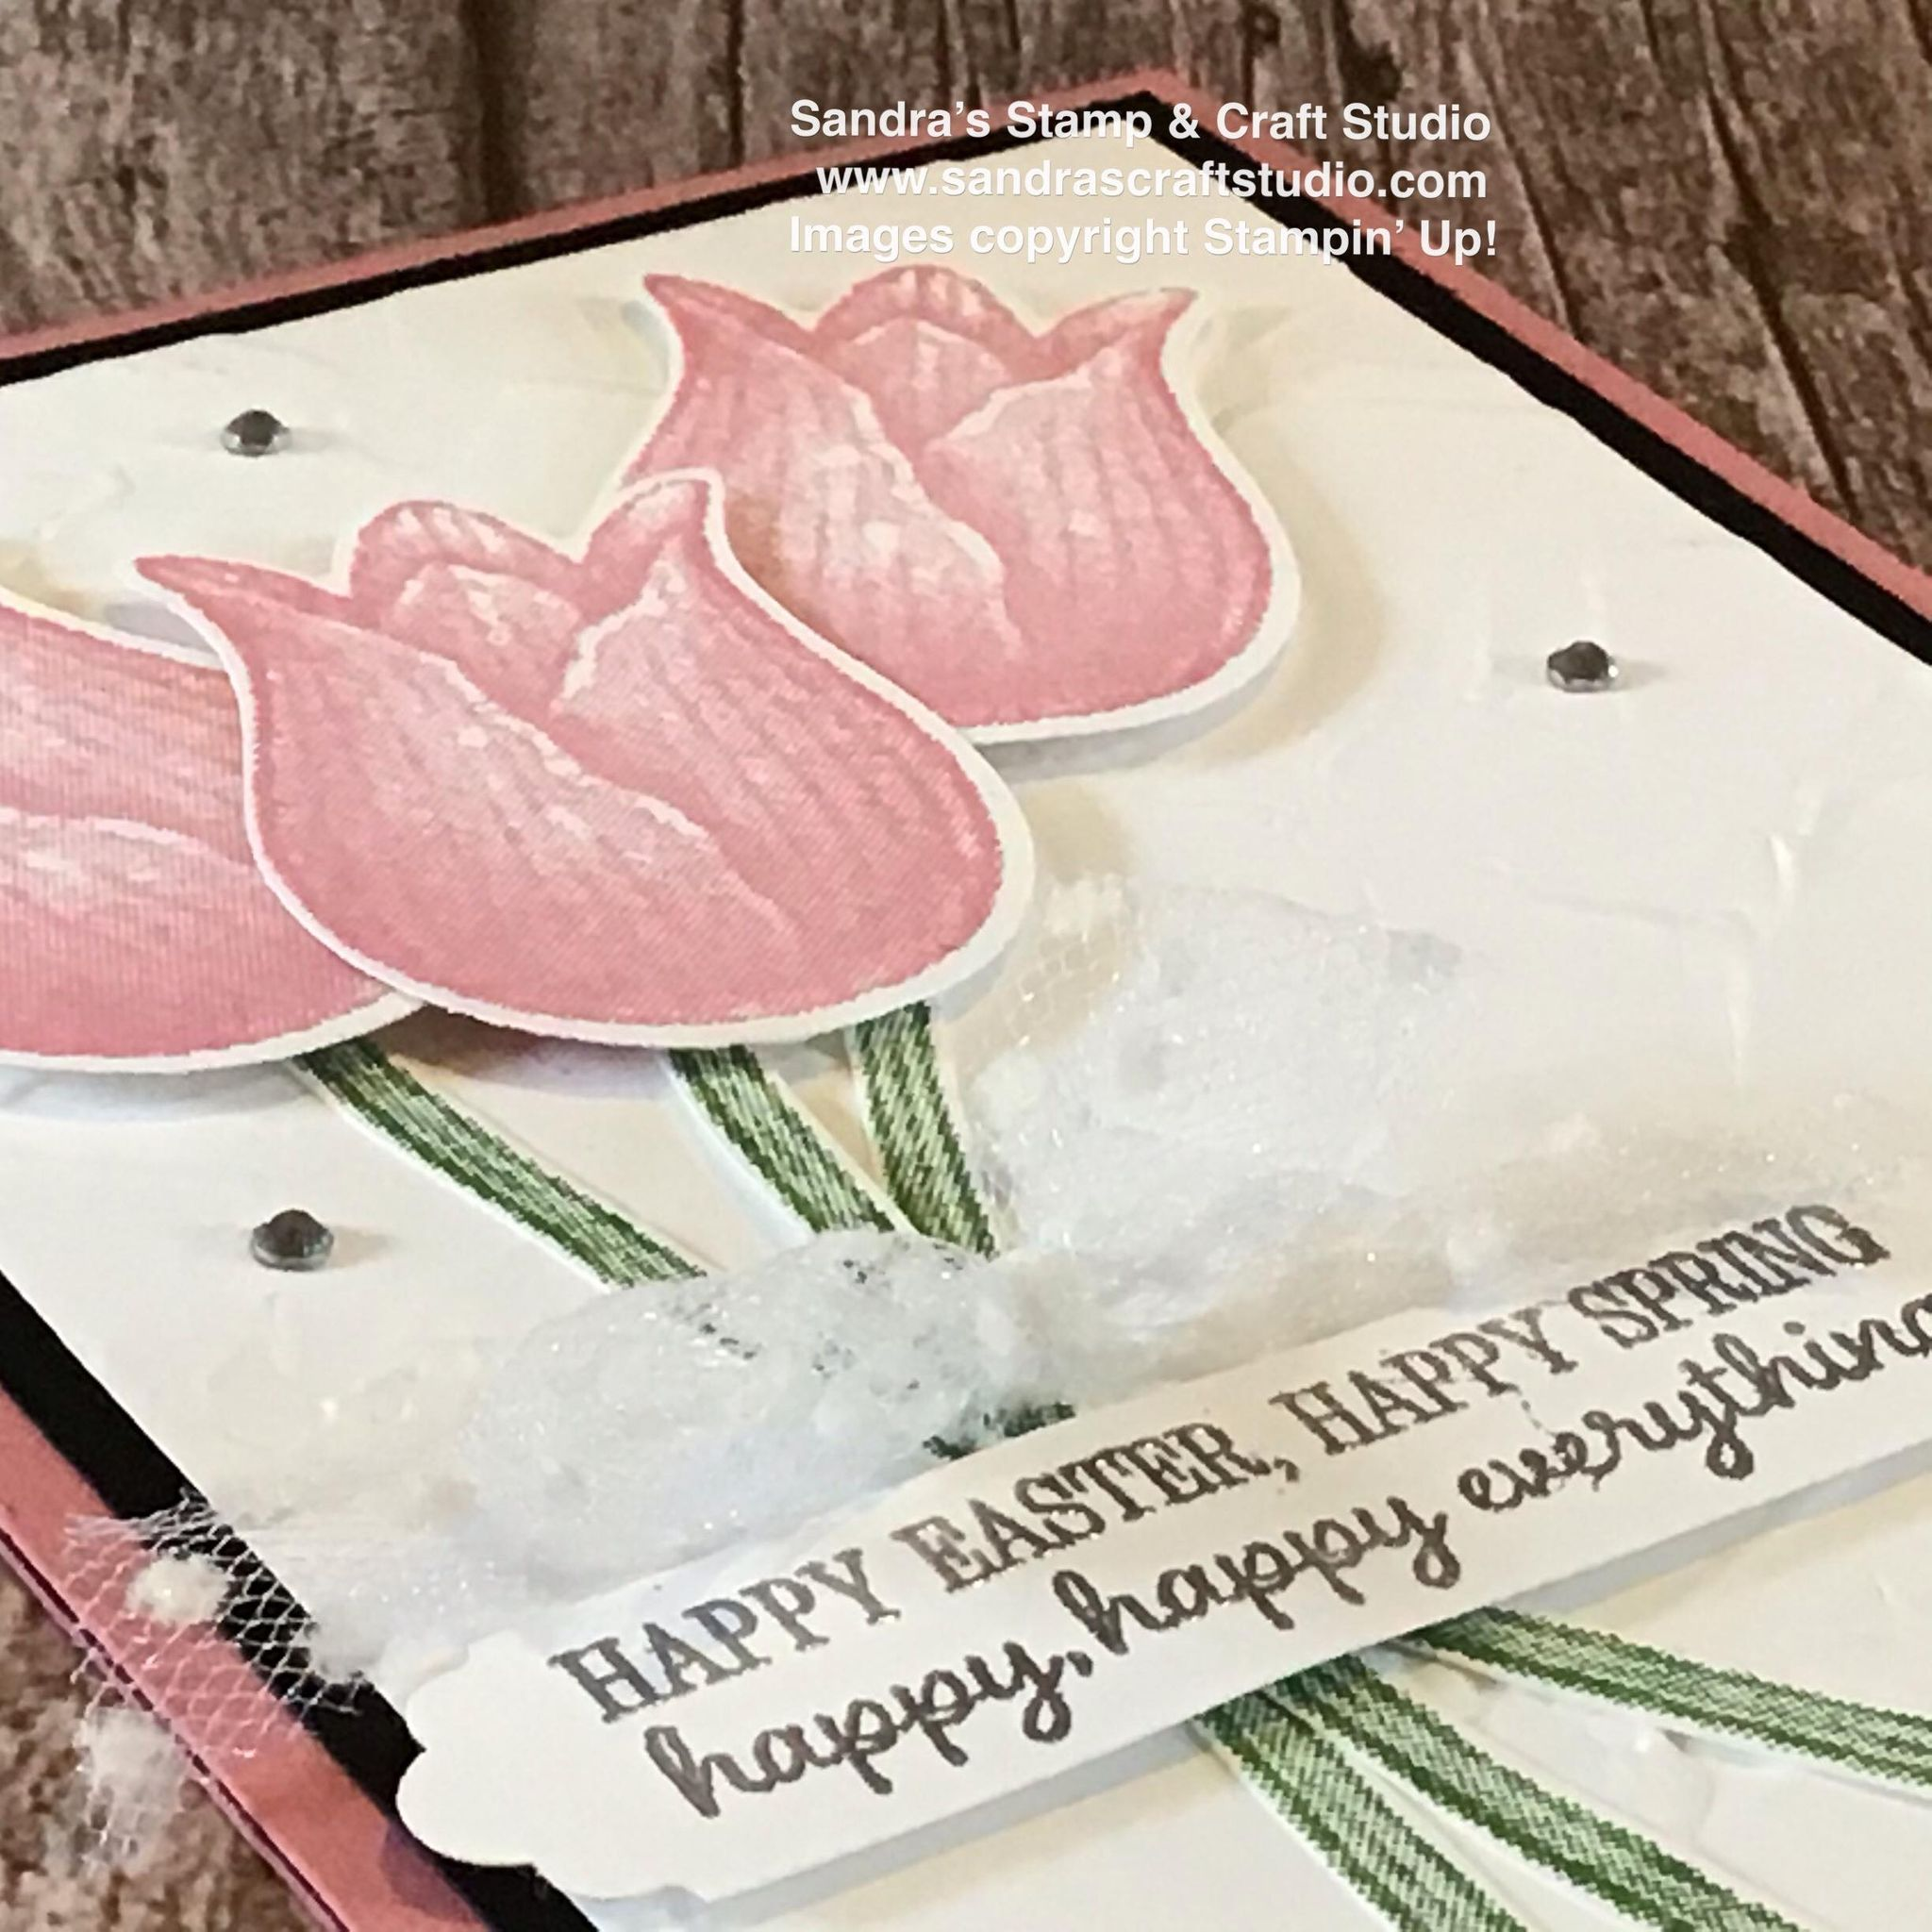 Handmade Card using Timeless Tulips stamps & punch from Stampin' Up!